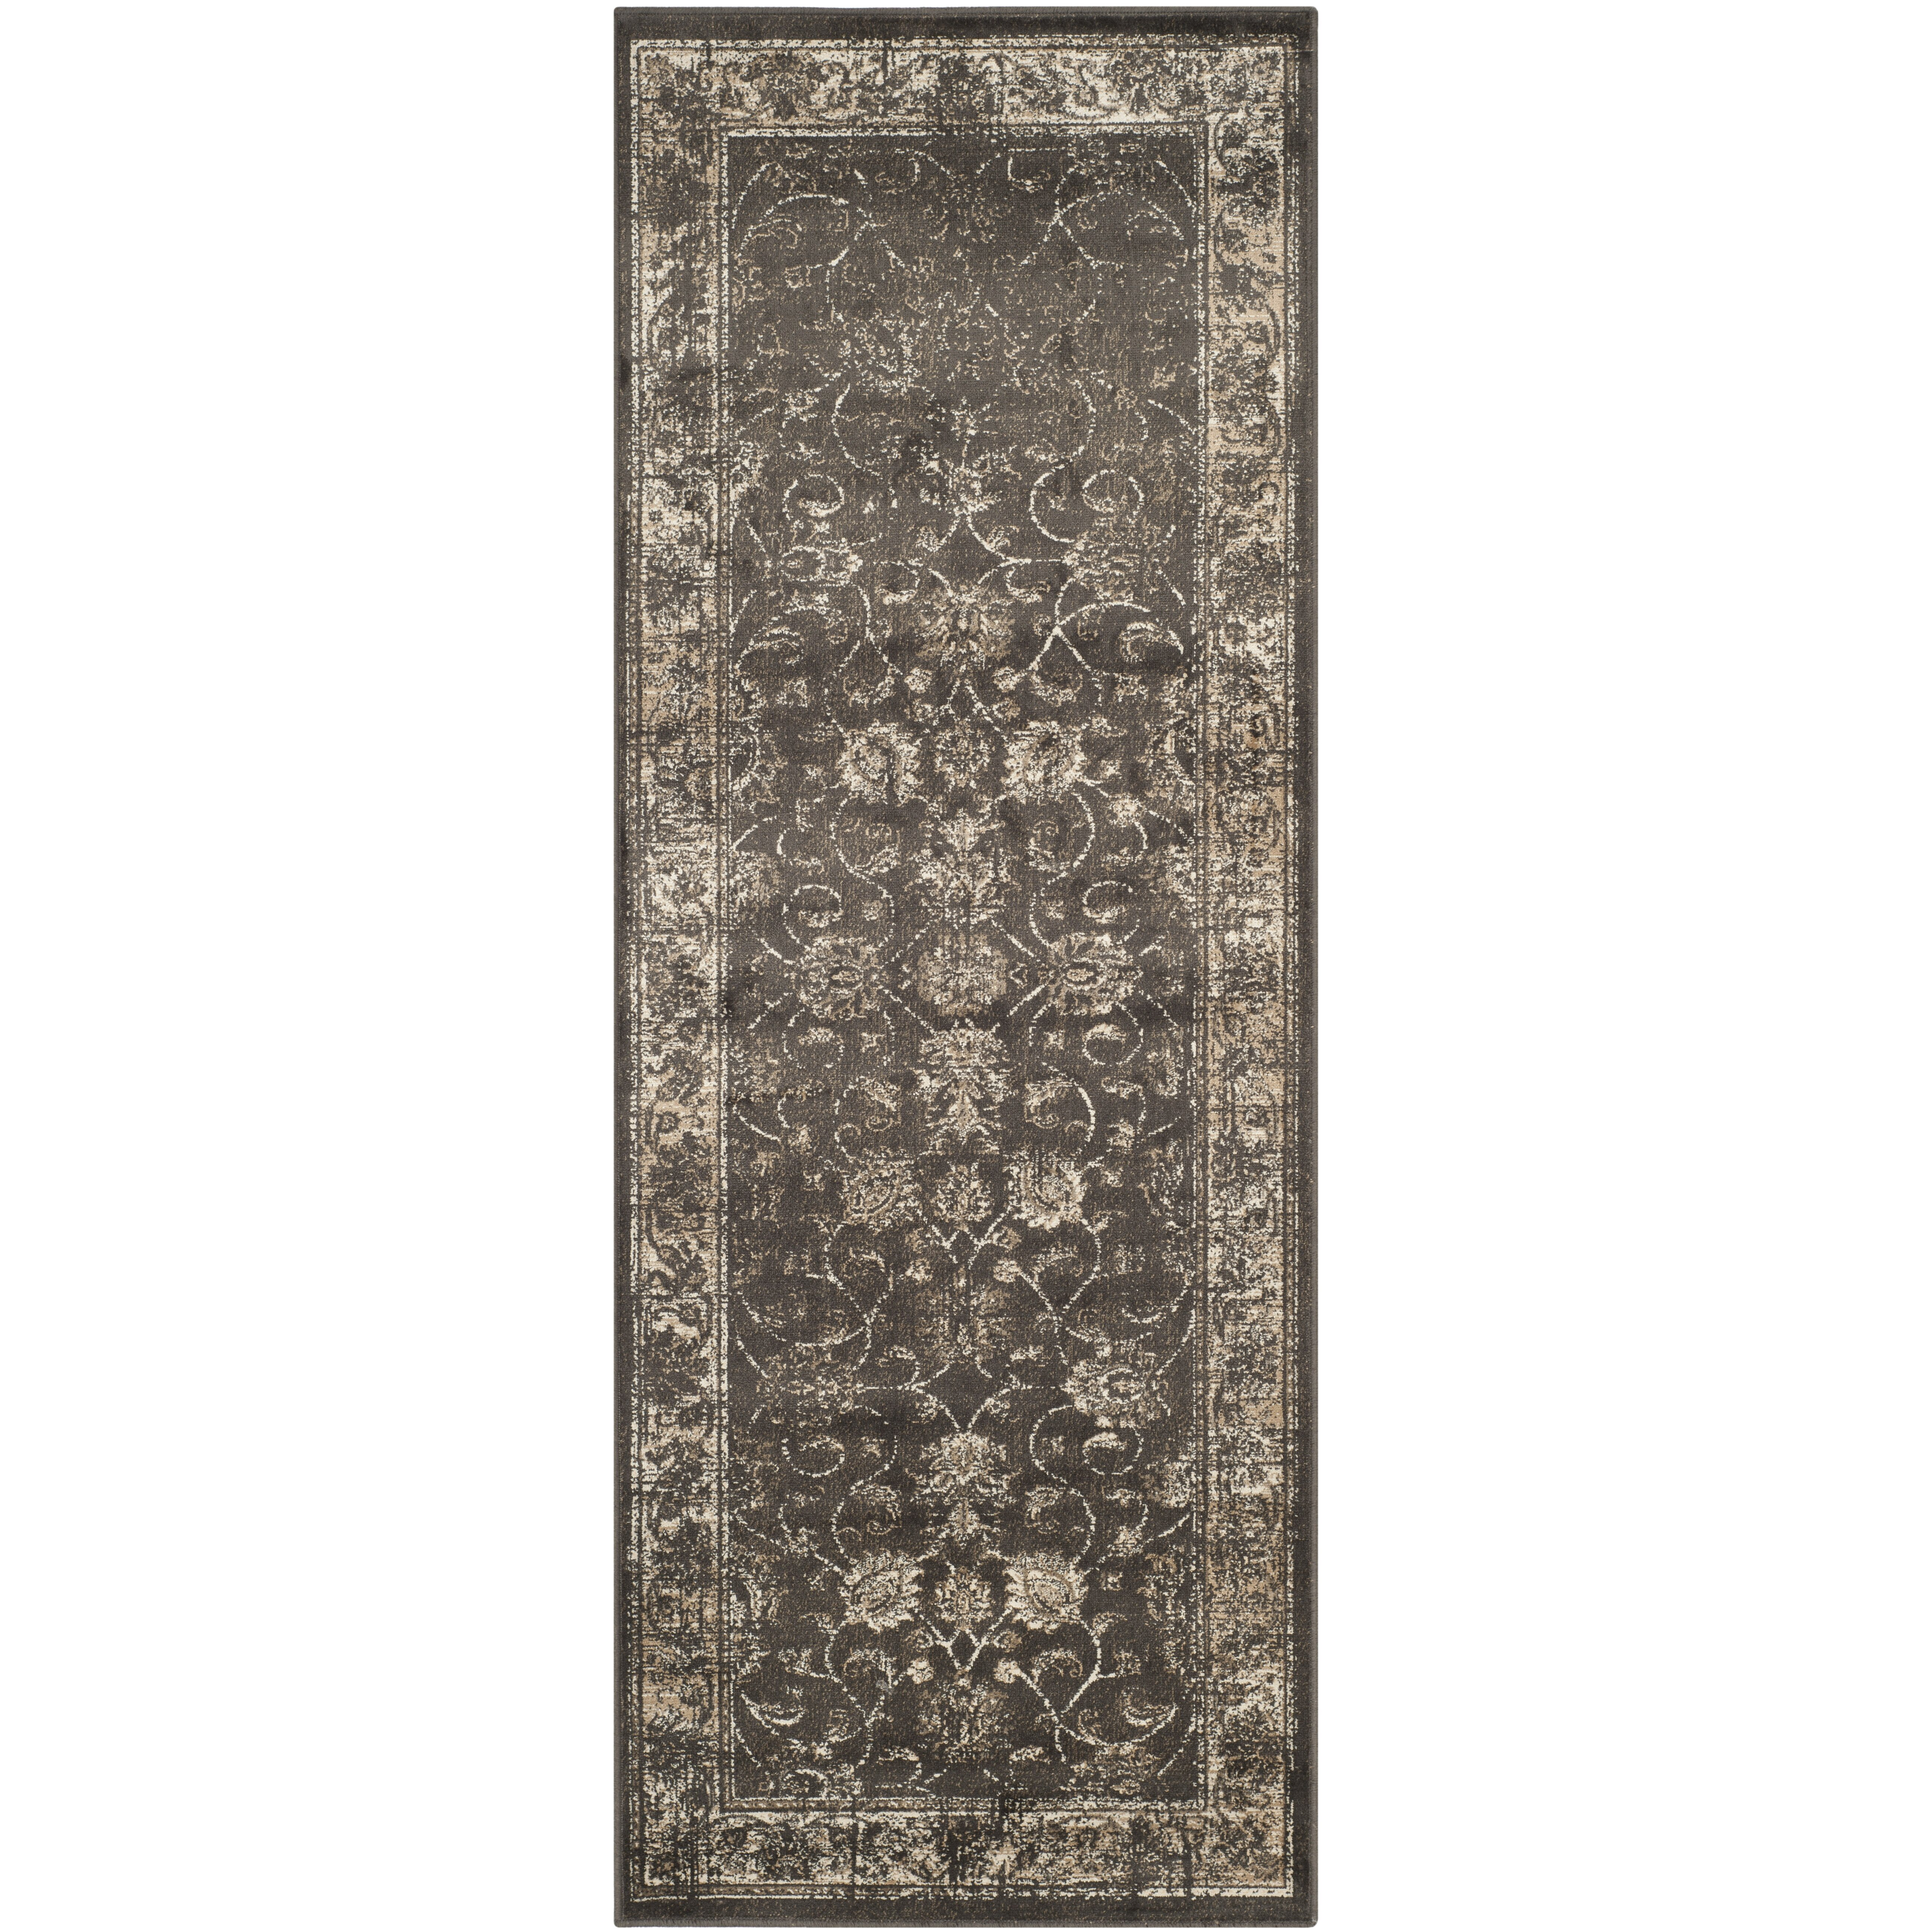 Charlton Home Rindge Soft Anthracite Area Rug & Reviews